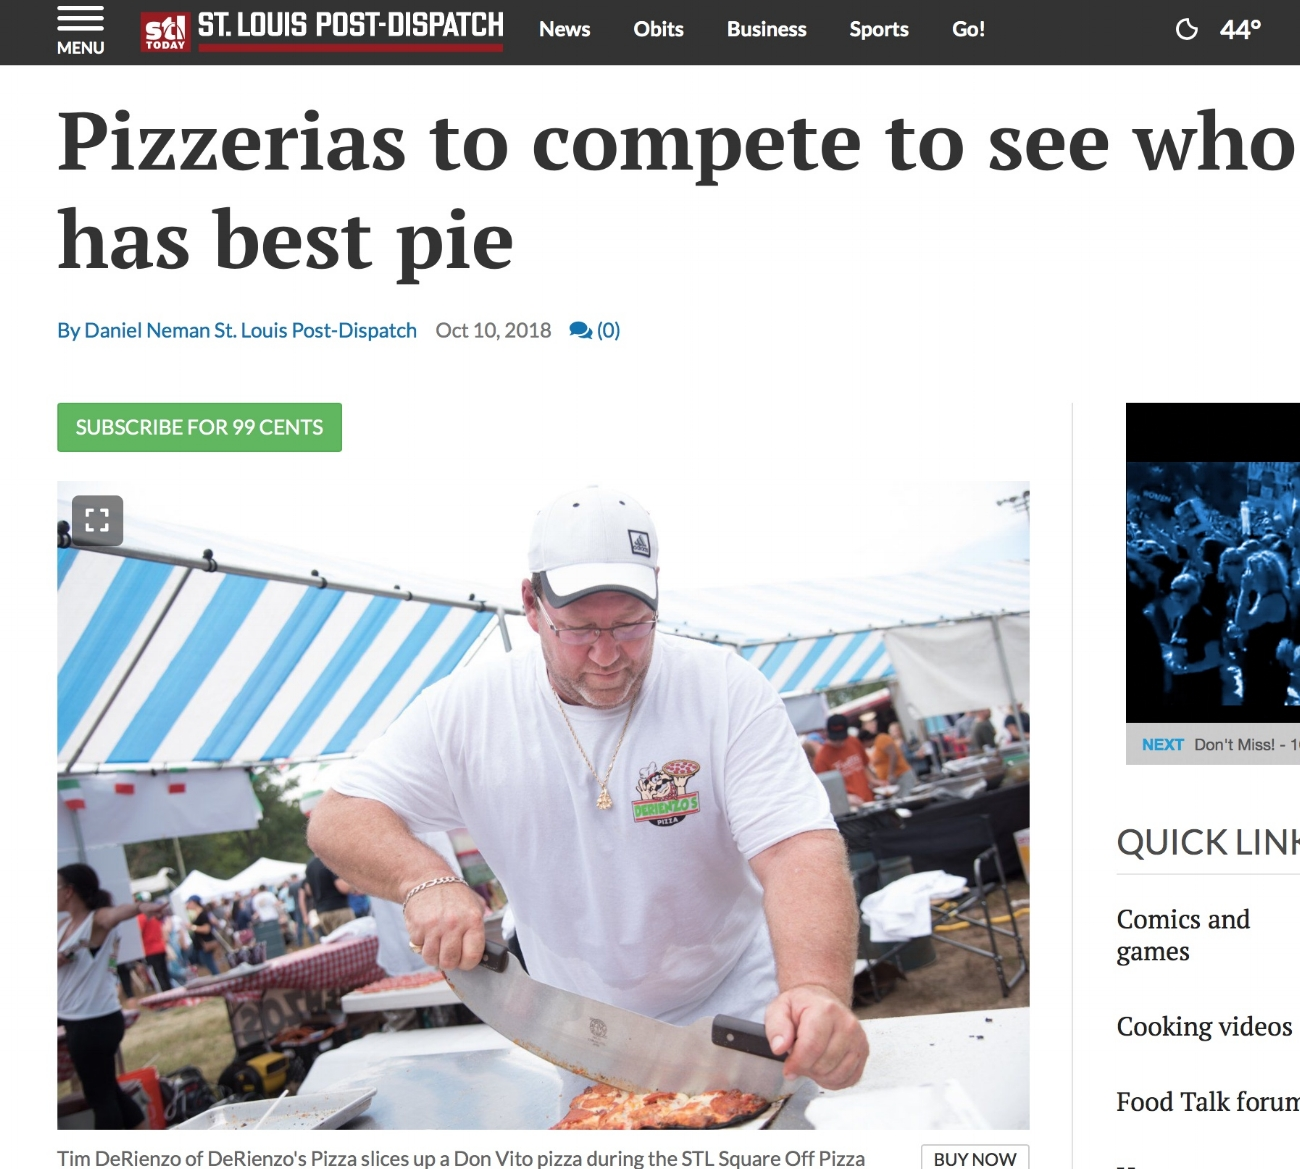 STL POST - DISPATCHPizzerias to compete to see who has best pieDaniel NemanOct 10, 2018 - Yes, the lines are long. But at the end of each one is pizza.The STL Square-Off Pizza Festival on the Hill will be held Sunday in Berra Park. Eight local pizzerias will go head to head to head to head to head to head to head to head to determine whose slice is beyond compare.